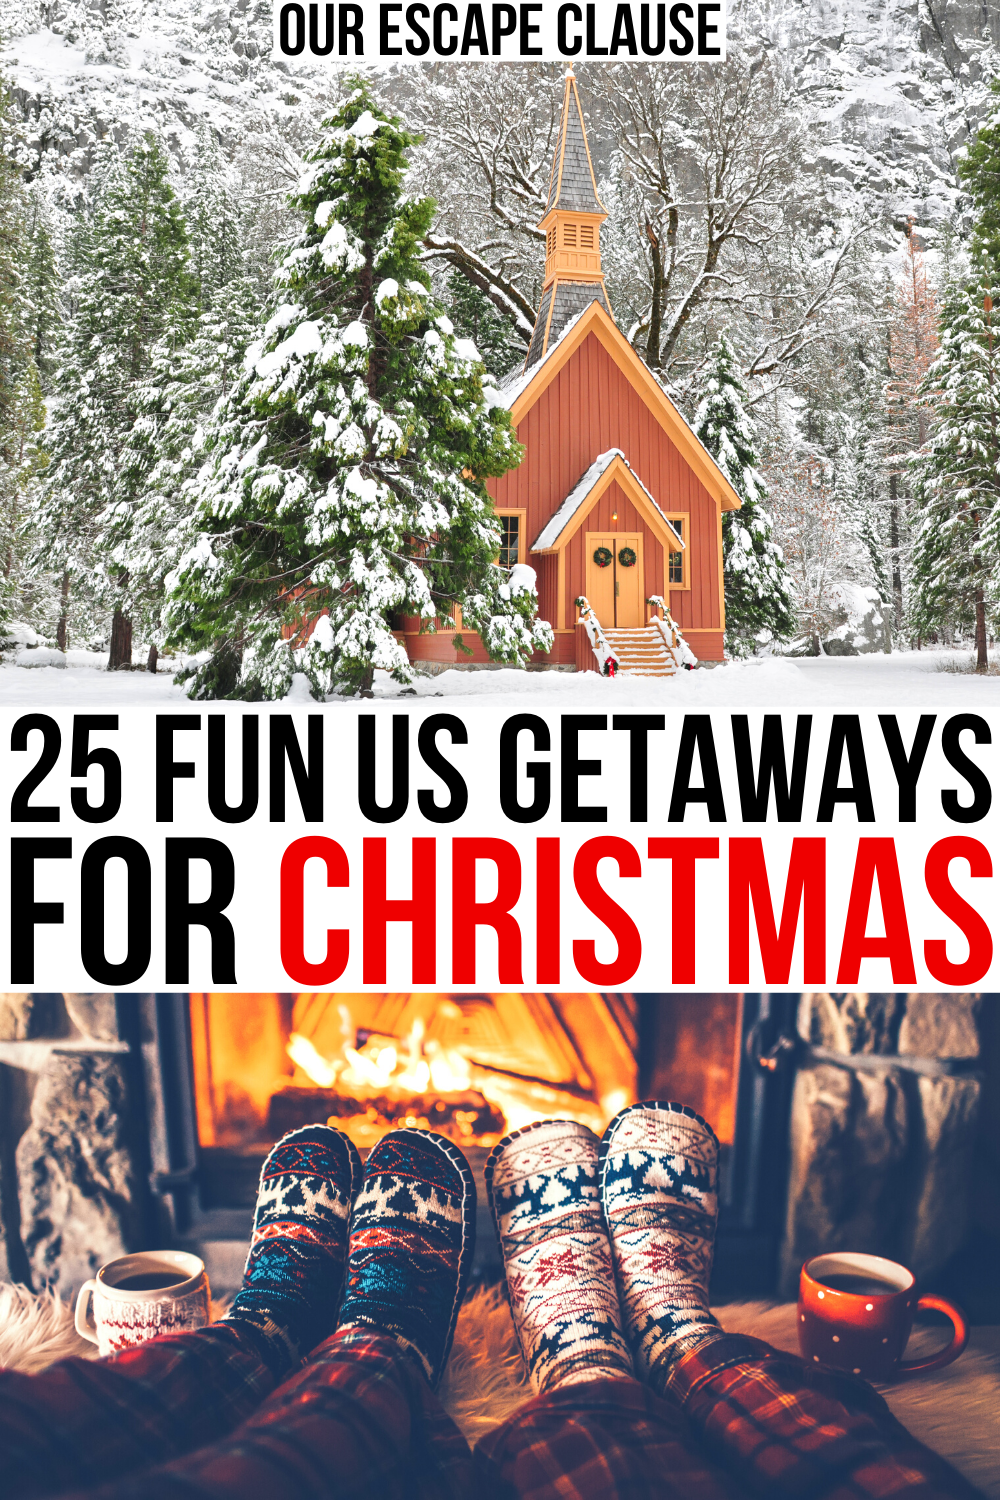 25 Best Christmas Vacations In The Usa Our Escape Clause Christmas Travel Best Christmas Vacations Christmas Travel Destinations